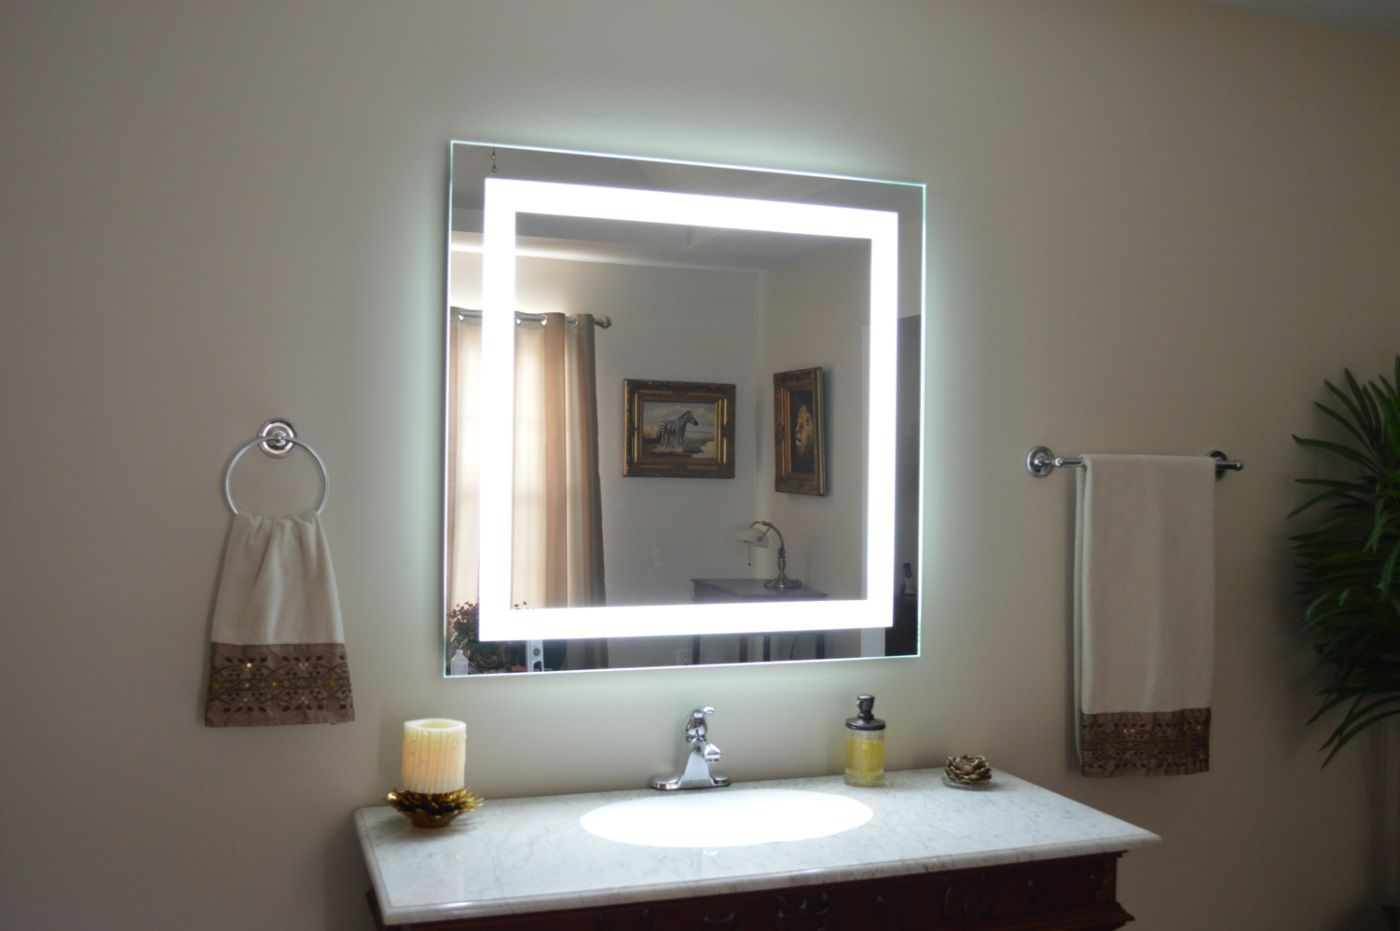 Wall Makeup Mirror 10 reasons to buy wall makeup mirror with lights | warisan lighting